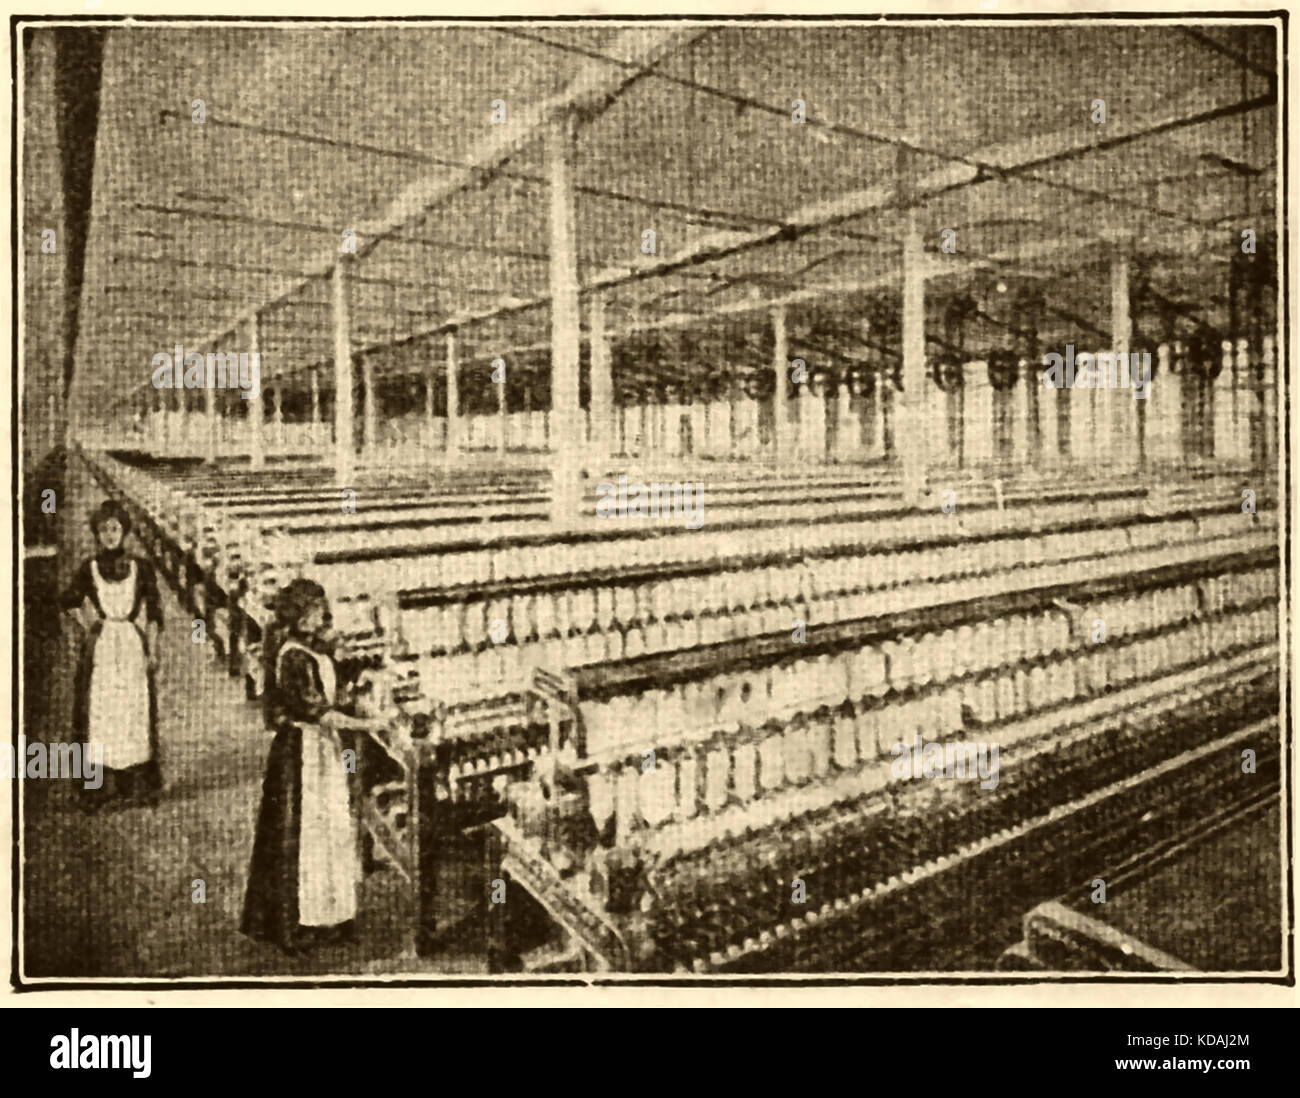 Inside a Lancashire (UK) cotton mill in 1914. - Stock Image